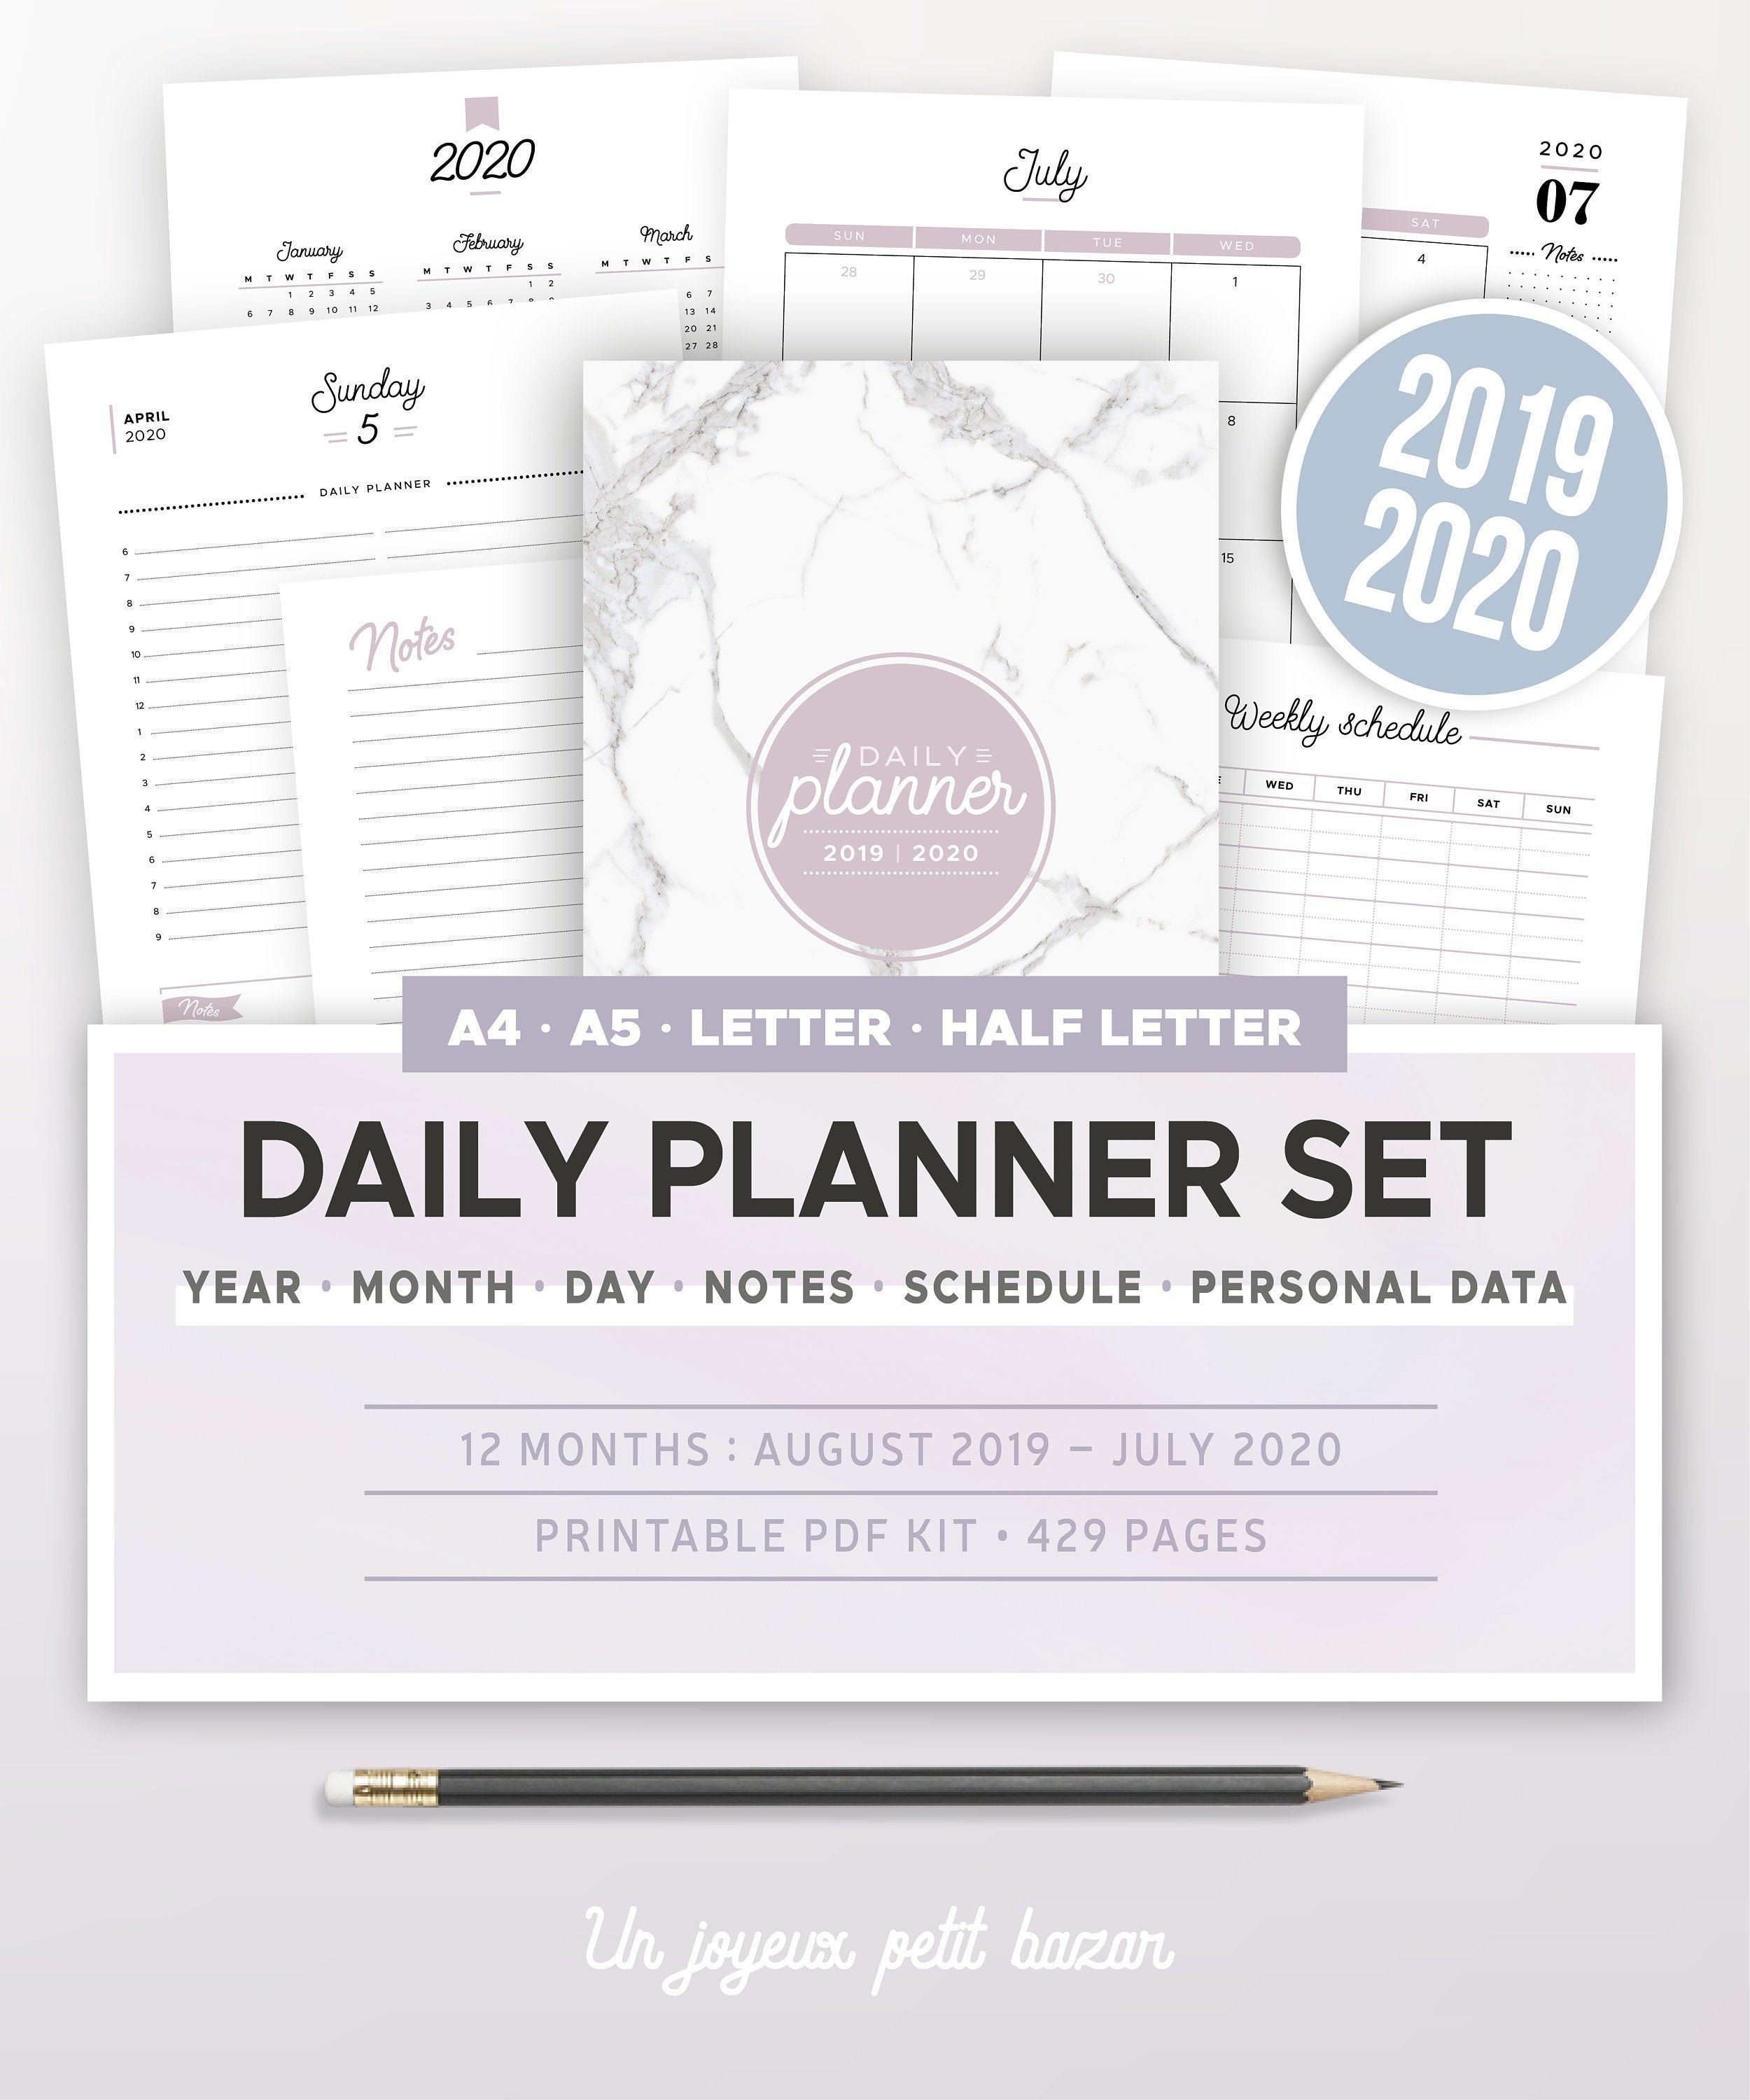 2019 2020 Daily Planner Kit Printable Yearly And Monthly Calendar Daily Agenda Schedule Inserts Planner A5 A4 Letter Half Size Semainier Agenda Et Agenda Journalier